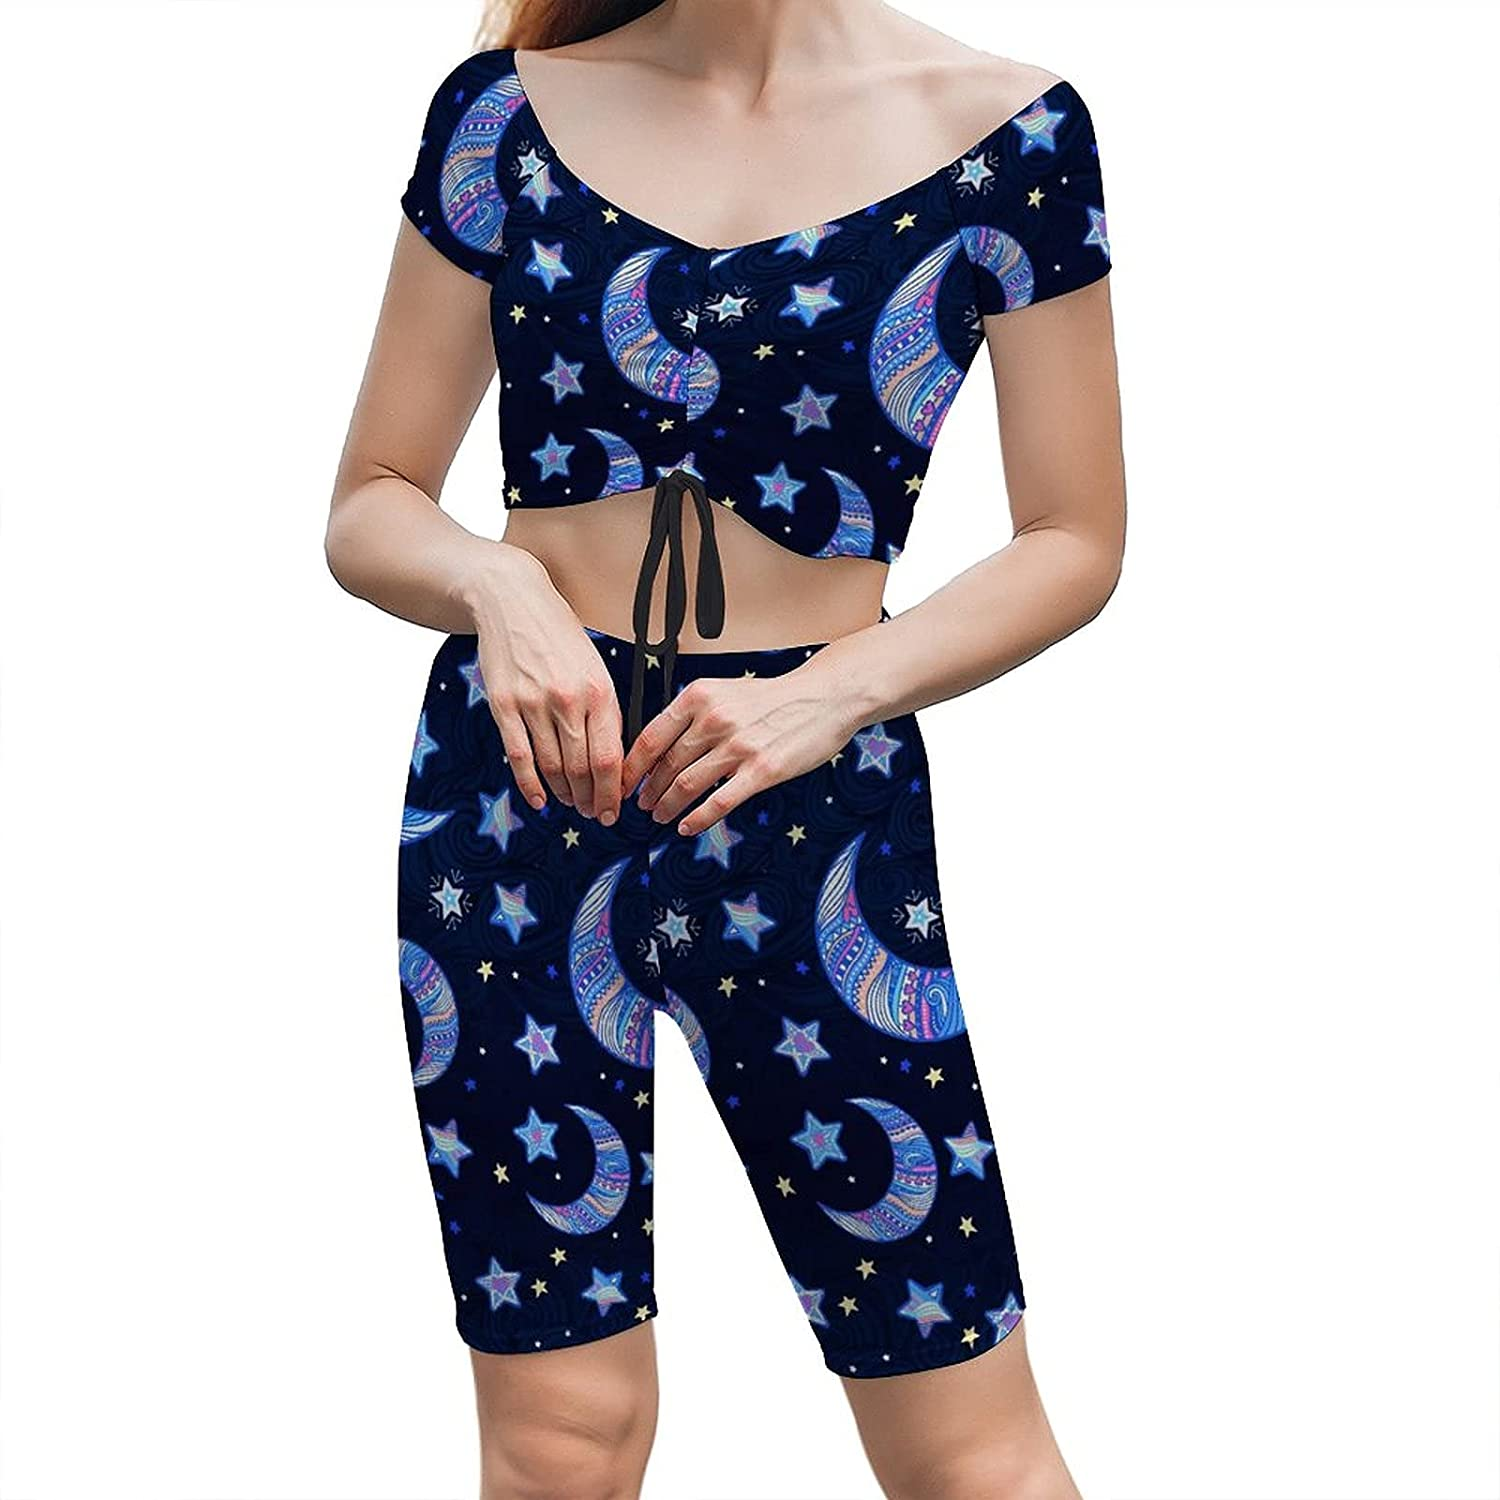 Yoga Outfits For Women 2 Piece Set Clothes Stars Blue S Reservation Moon Gym online shopping